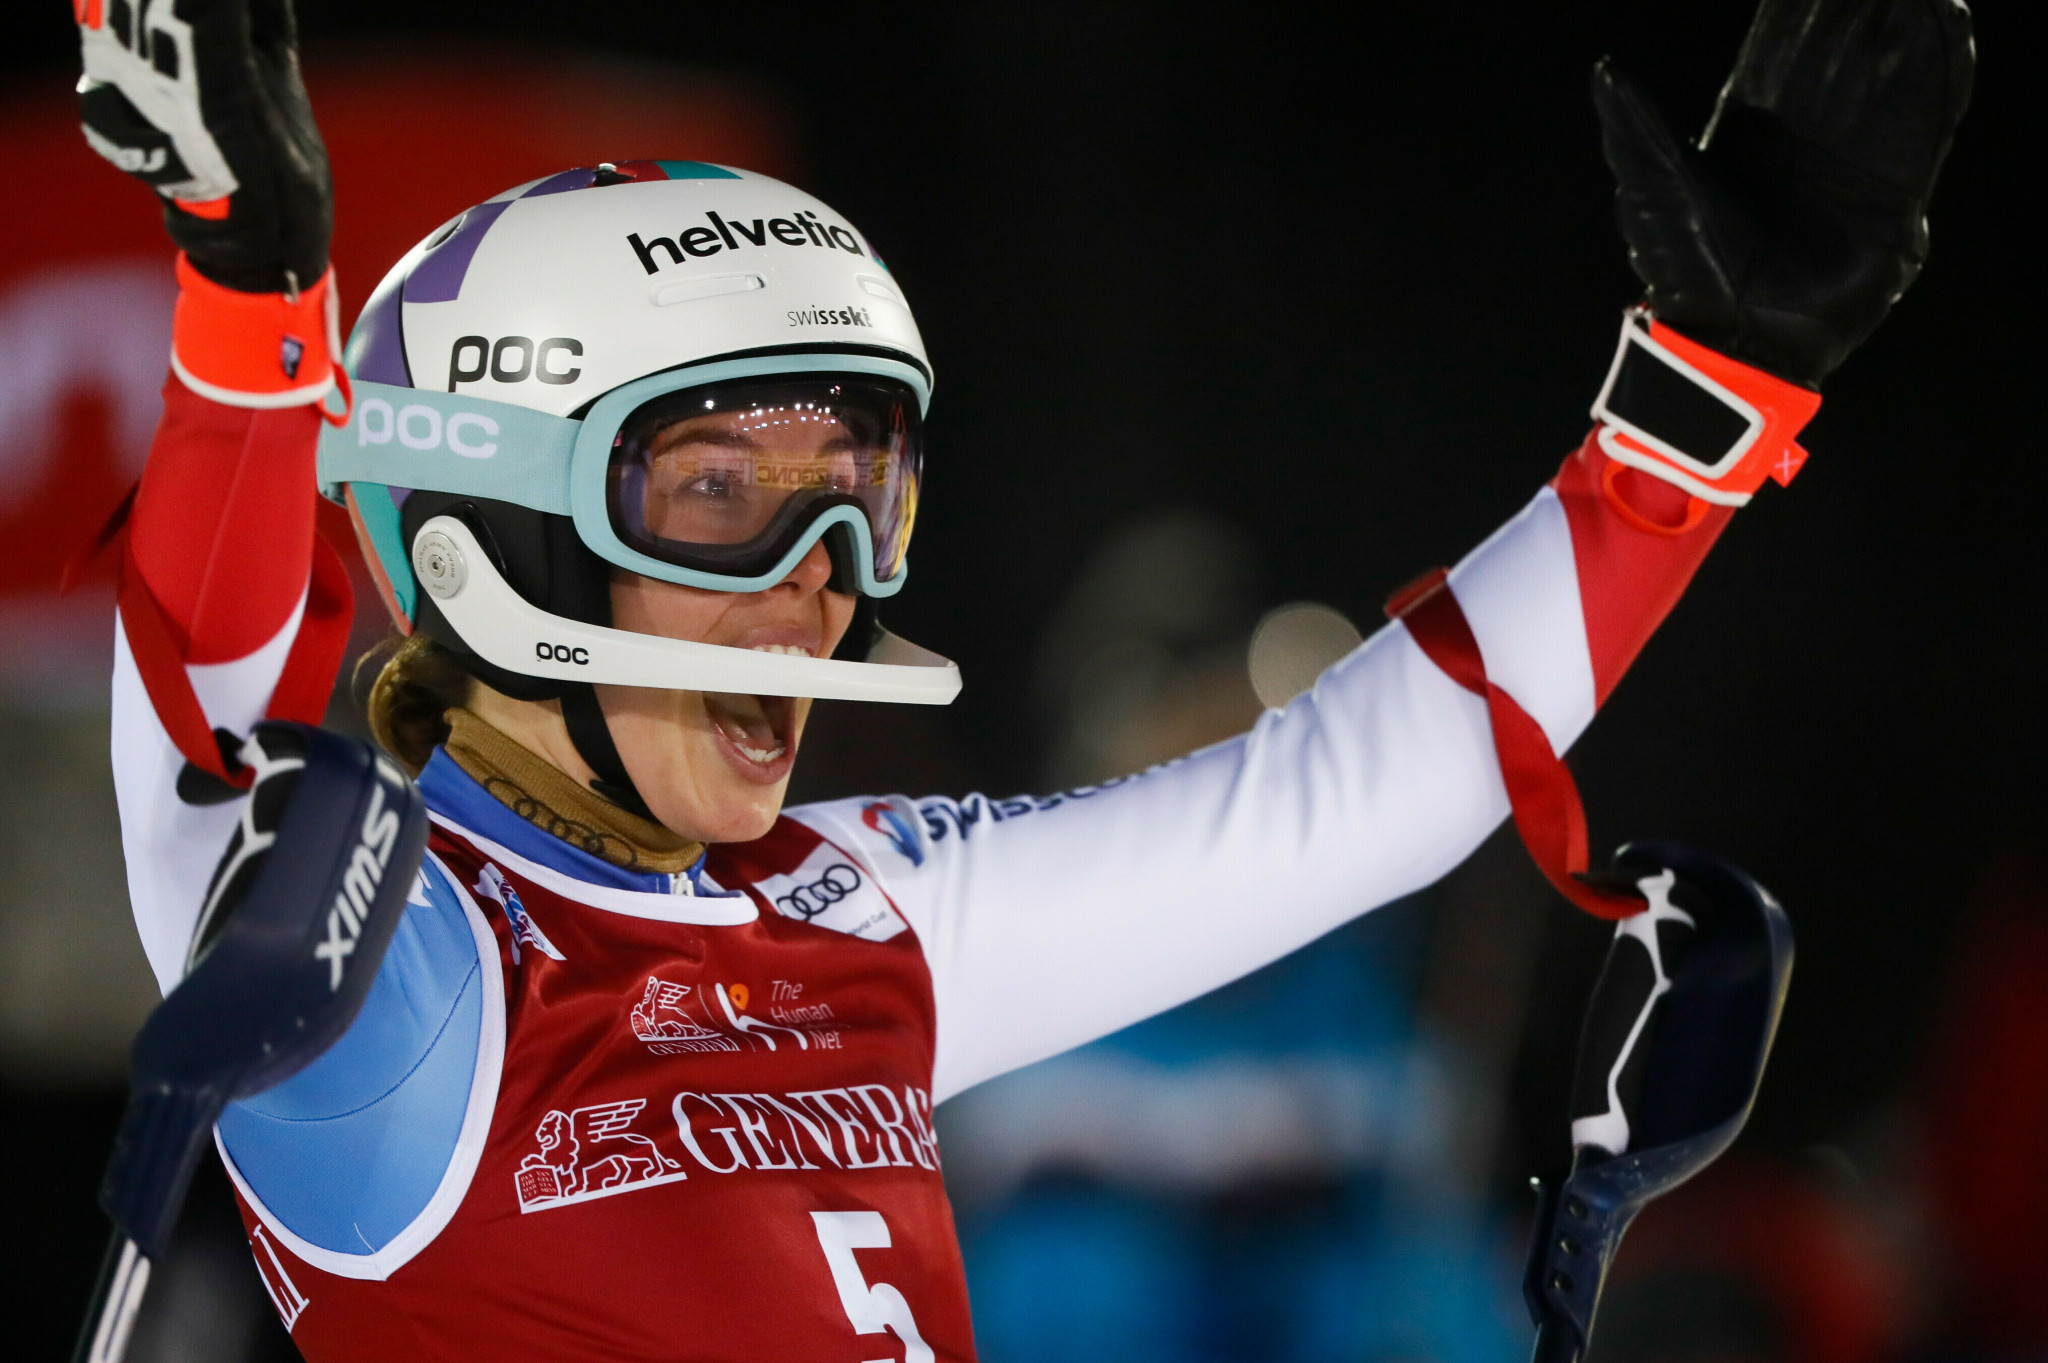 Michelle Gisin matched her best-ever slalom performance in the FIS Alpine Ski World Cup ©Getty Images